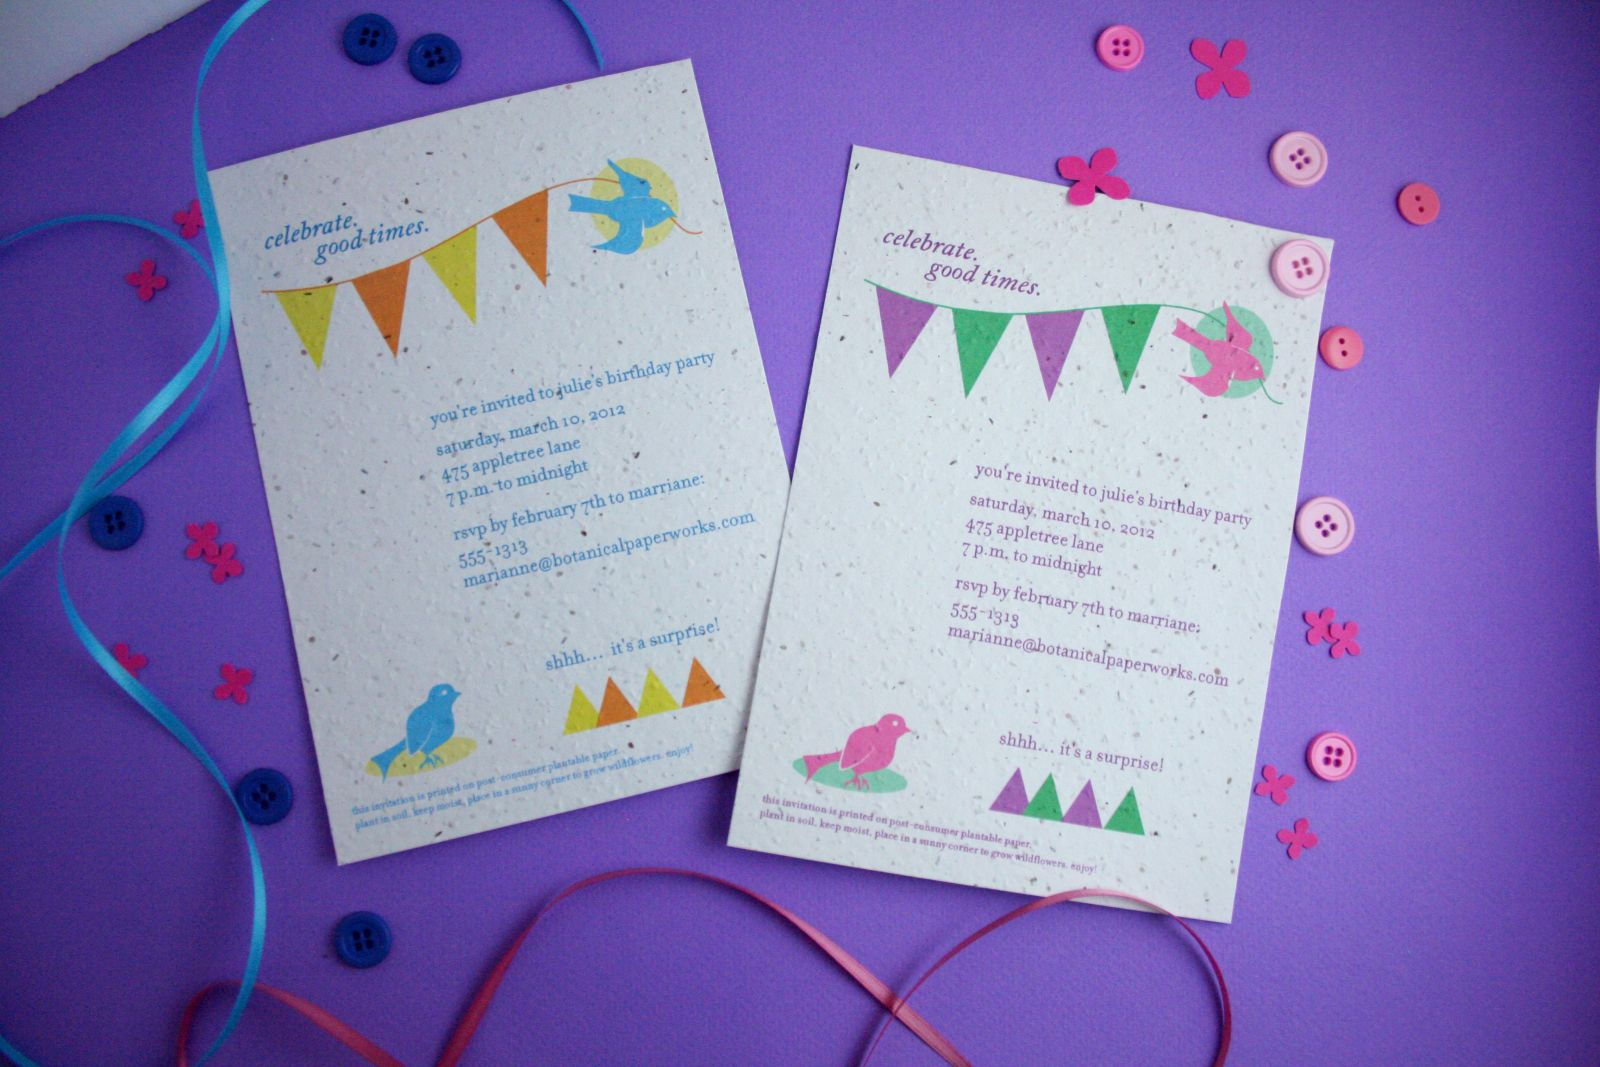 Handmade Birthday Invitation Cards Ideas 99 Simple Homemade Birthday Invitations Simple B Cool Making